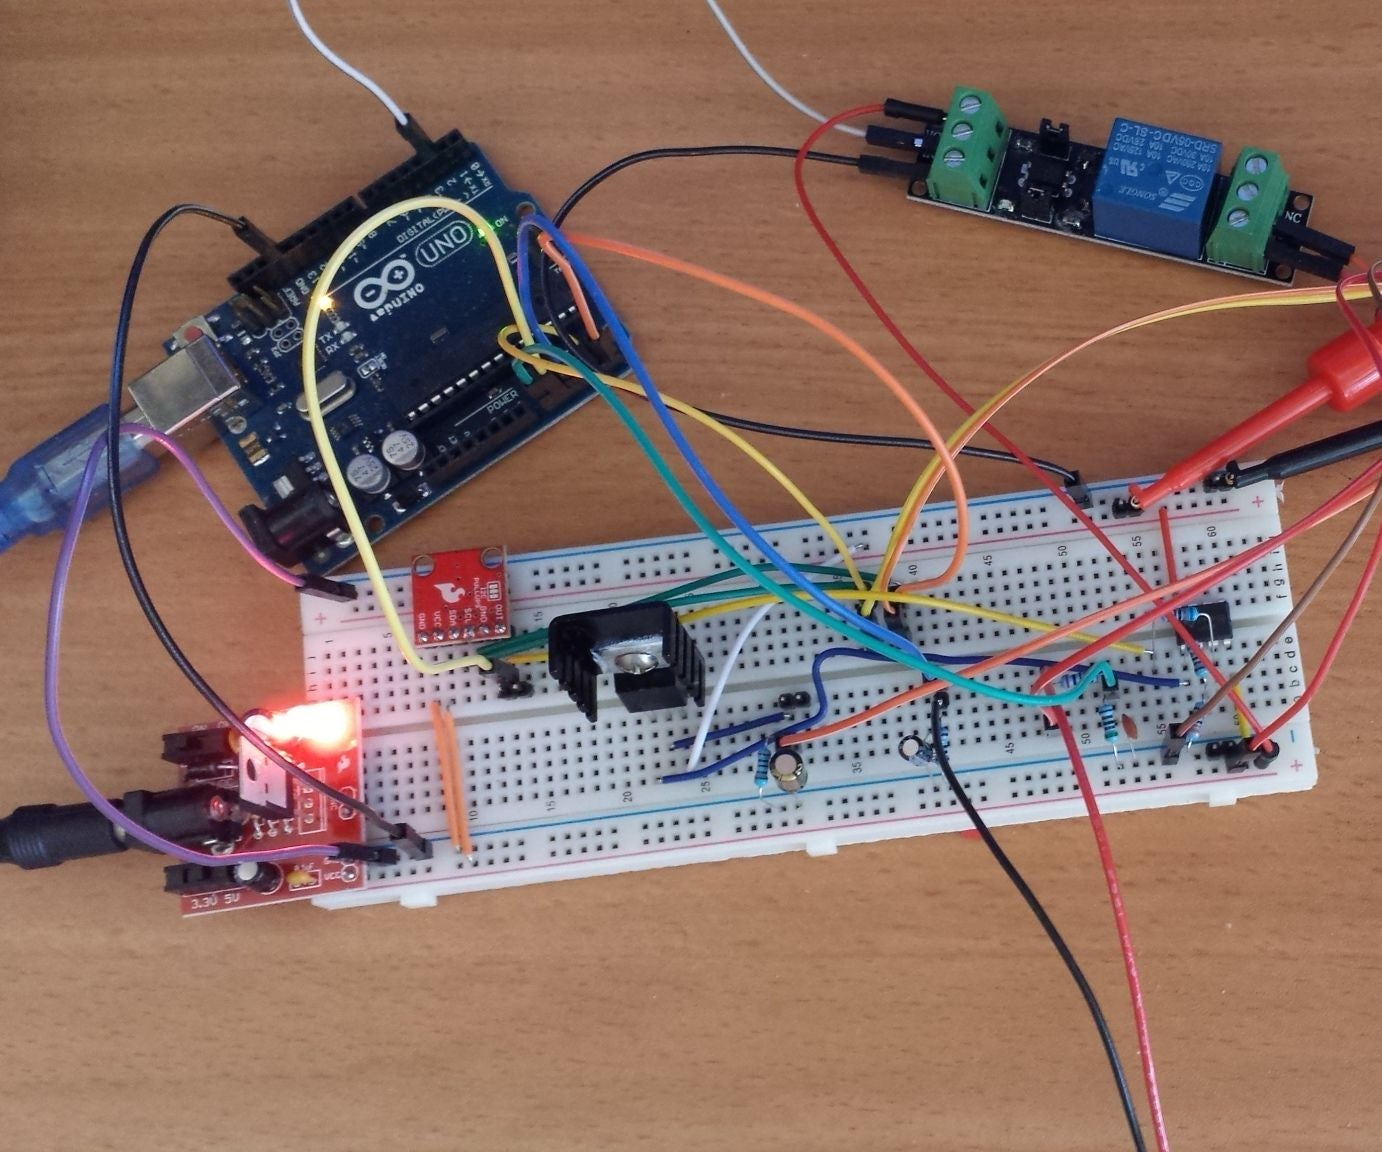 Intelligent Charger For 9v Nimh Rechargeable Batteries 10 Steps Hacked Circuits By 9volts